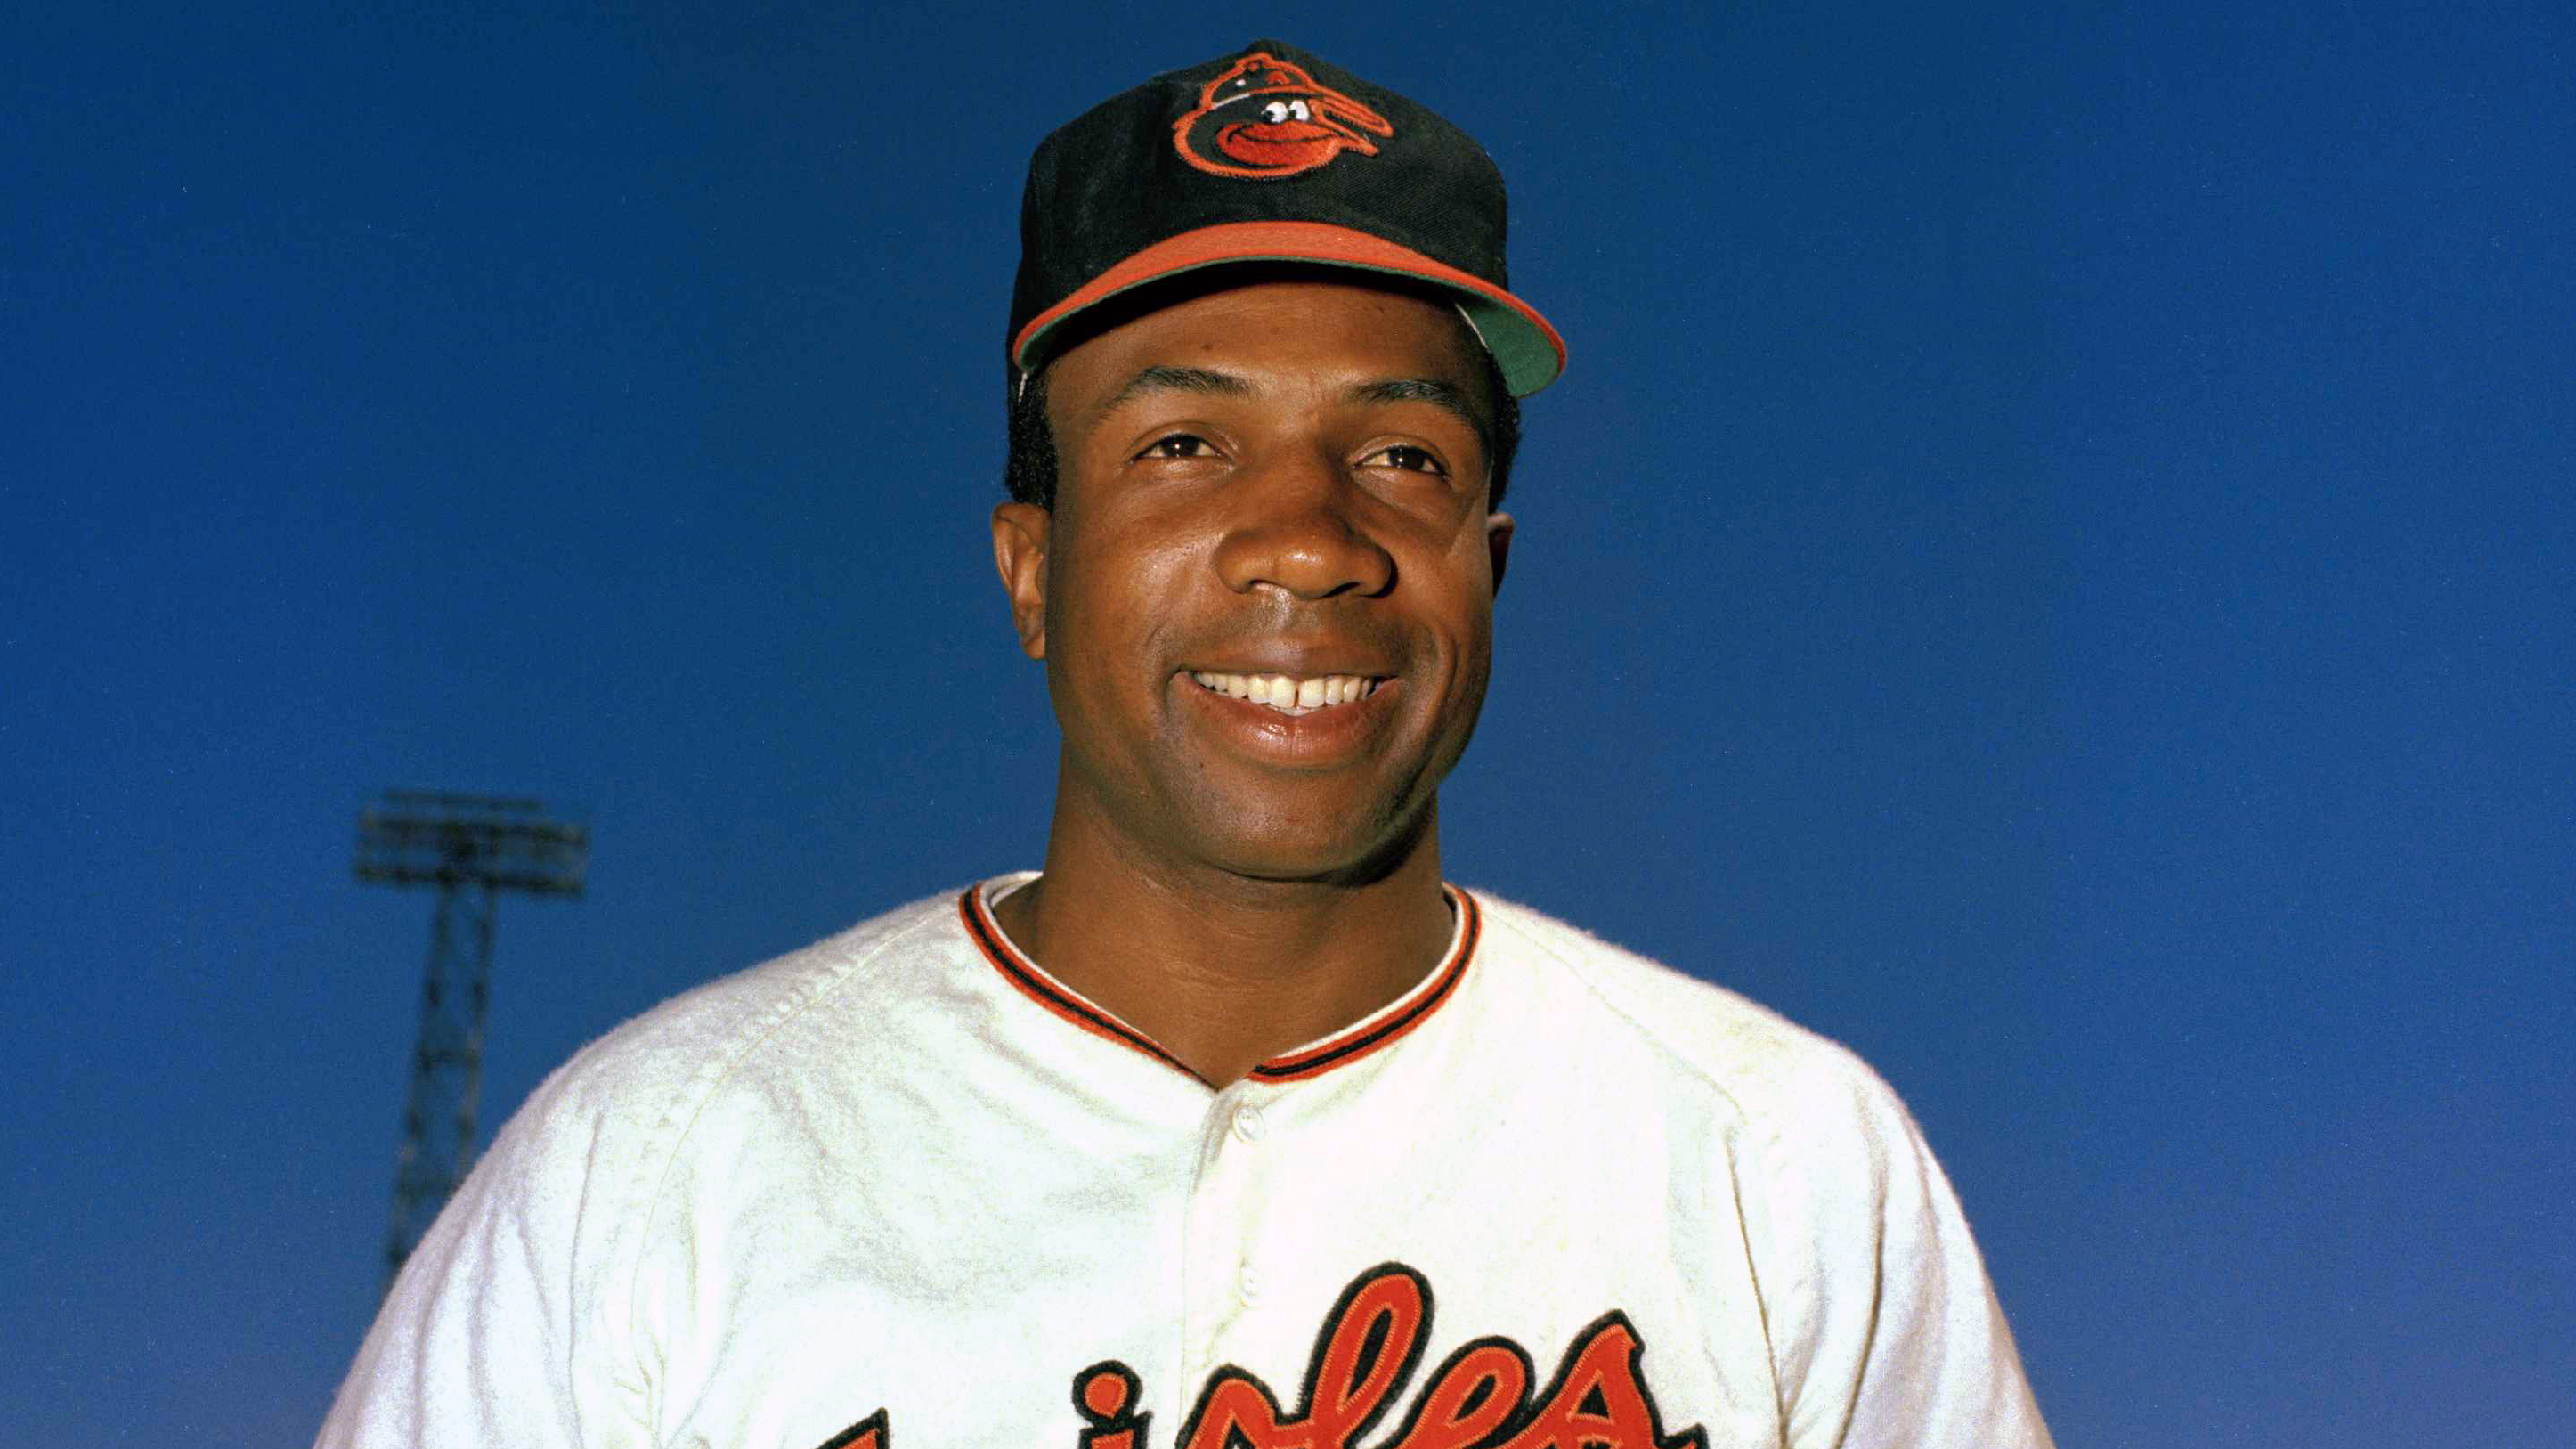 Hall of Famer Frank Robinson was the only player to win the MVP award in both major leagues. He was also baseball's first black manager.